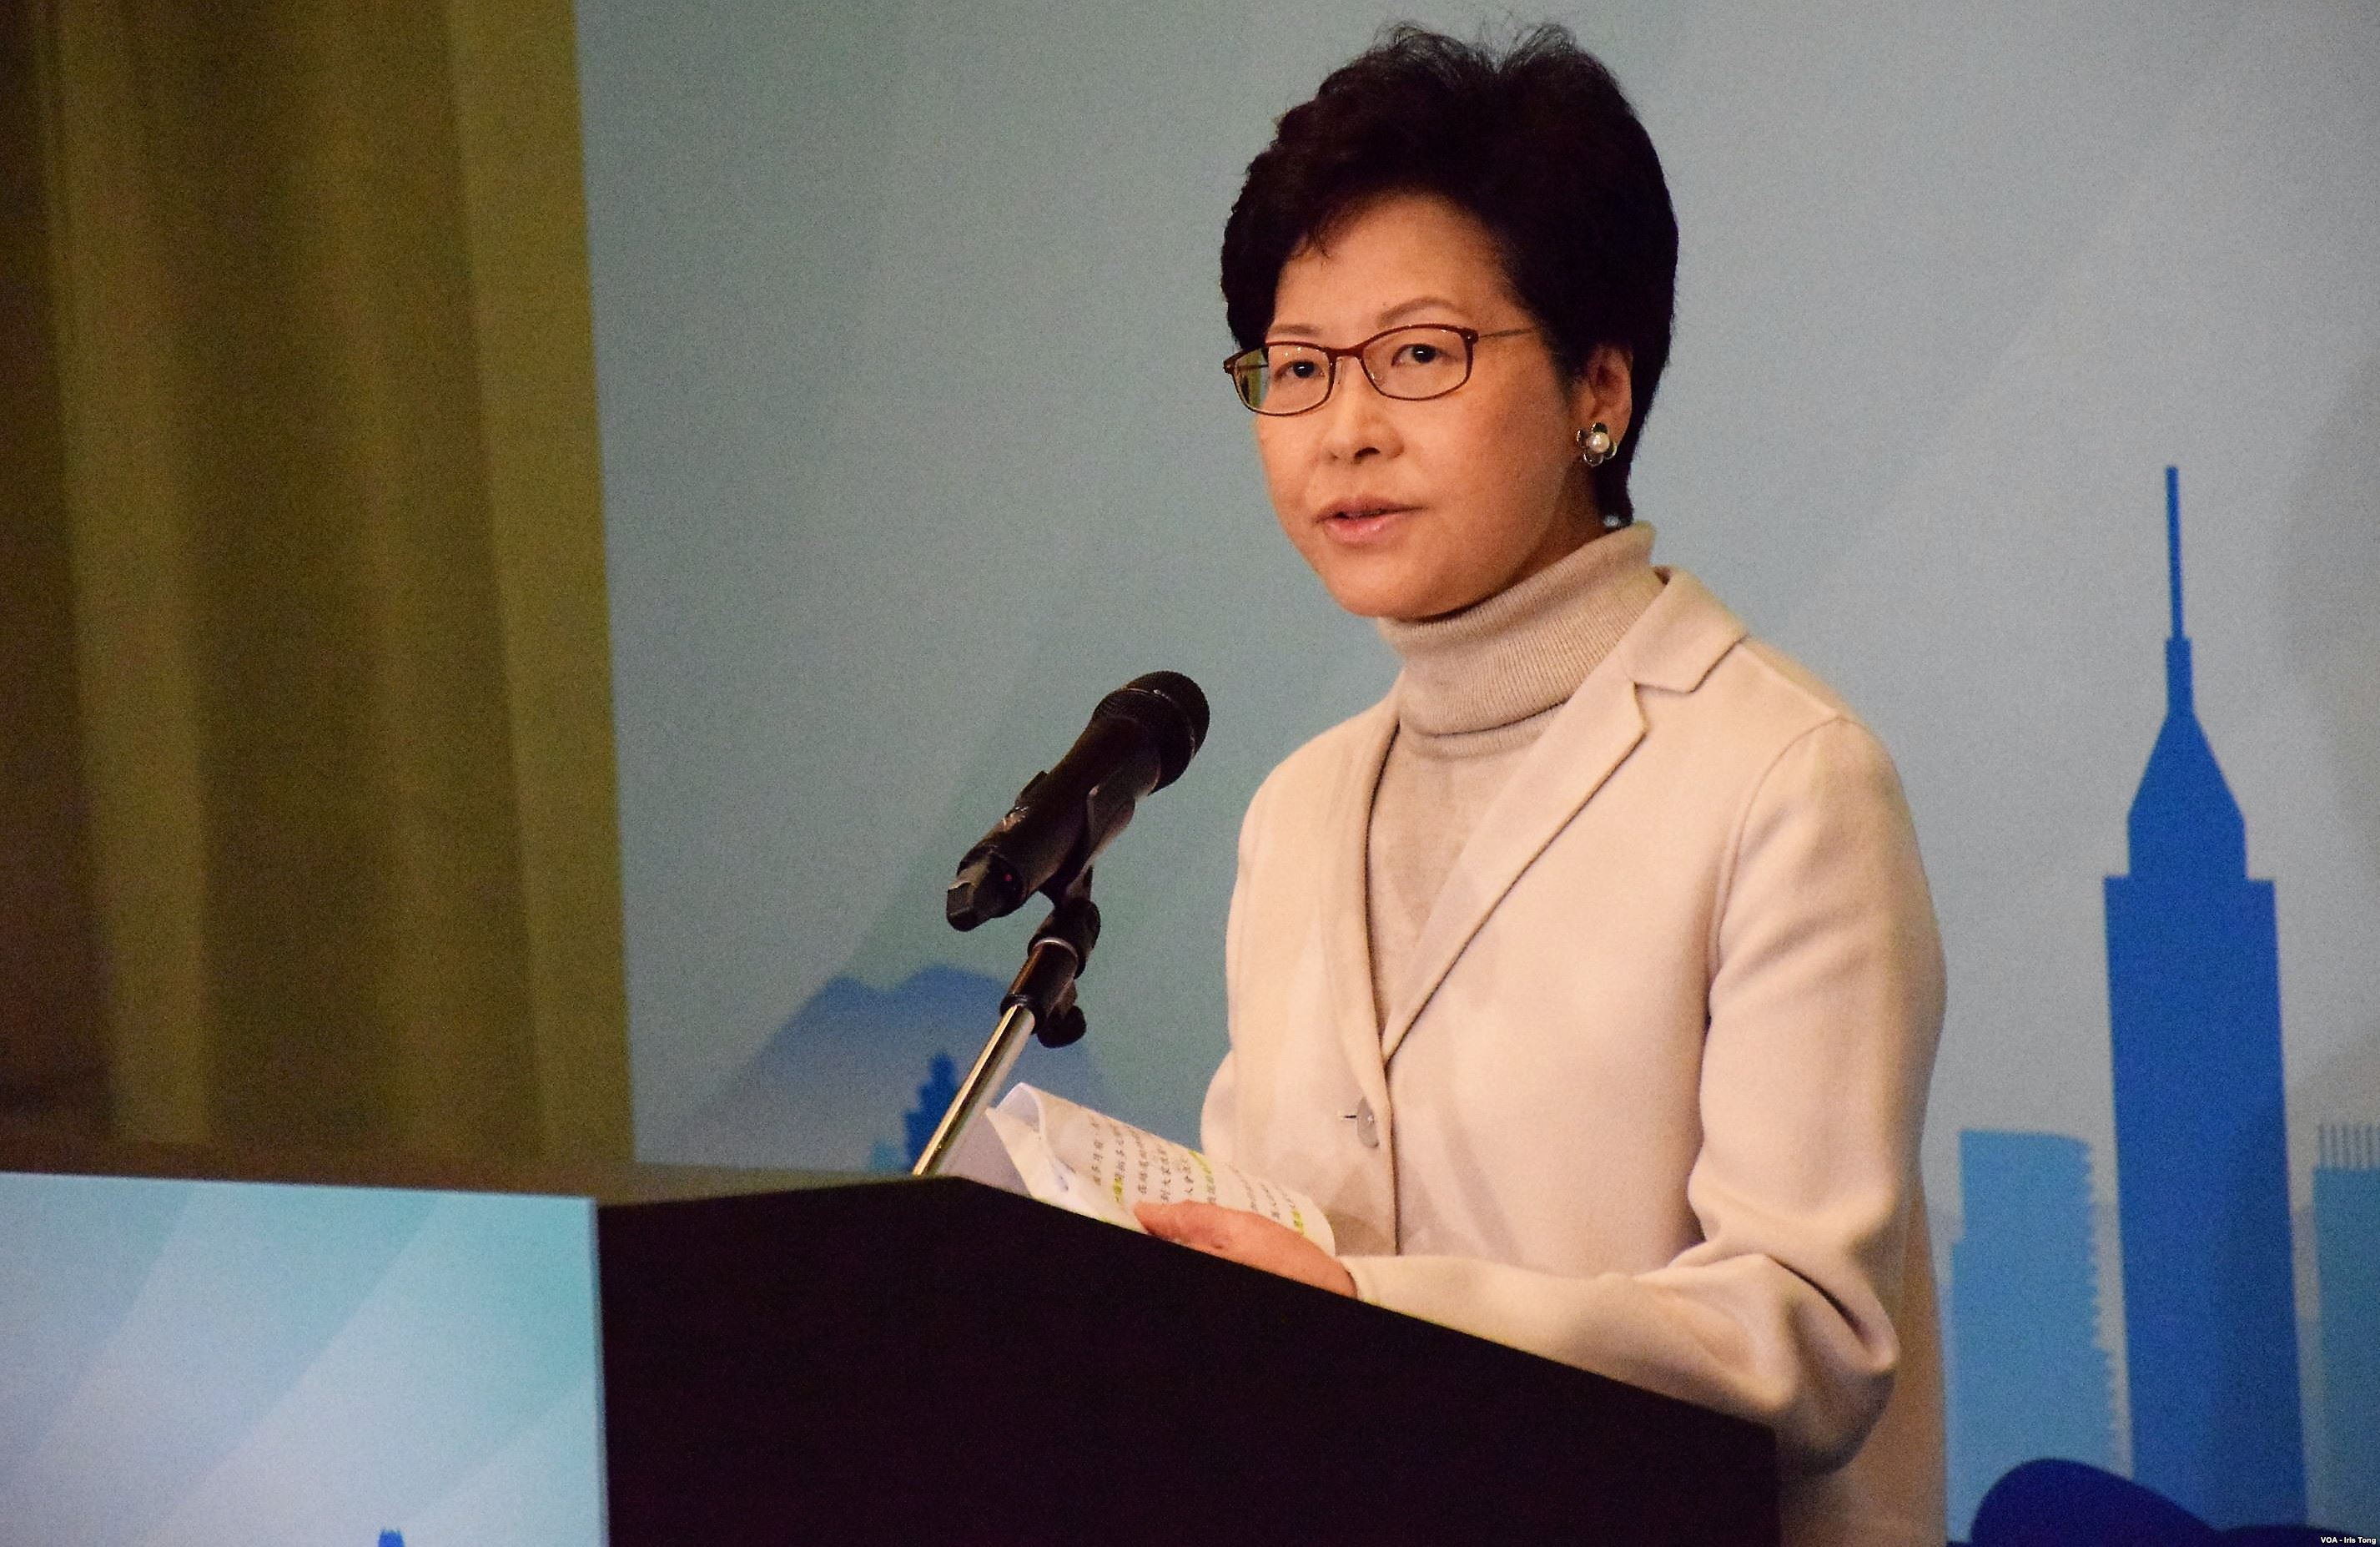 Photograph of the CE candidate Carrie Lam